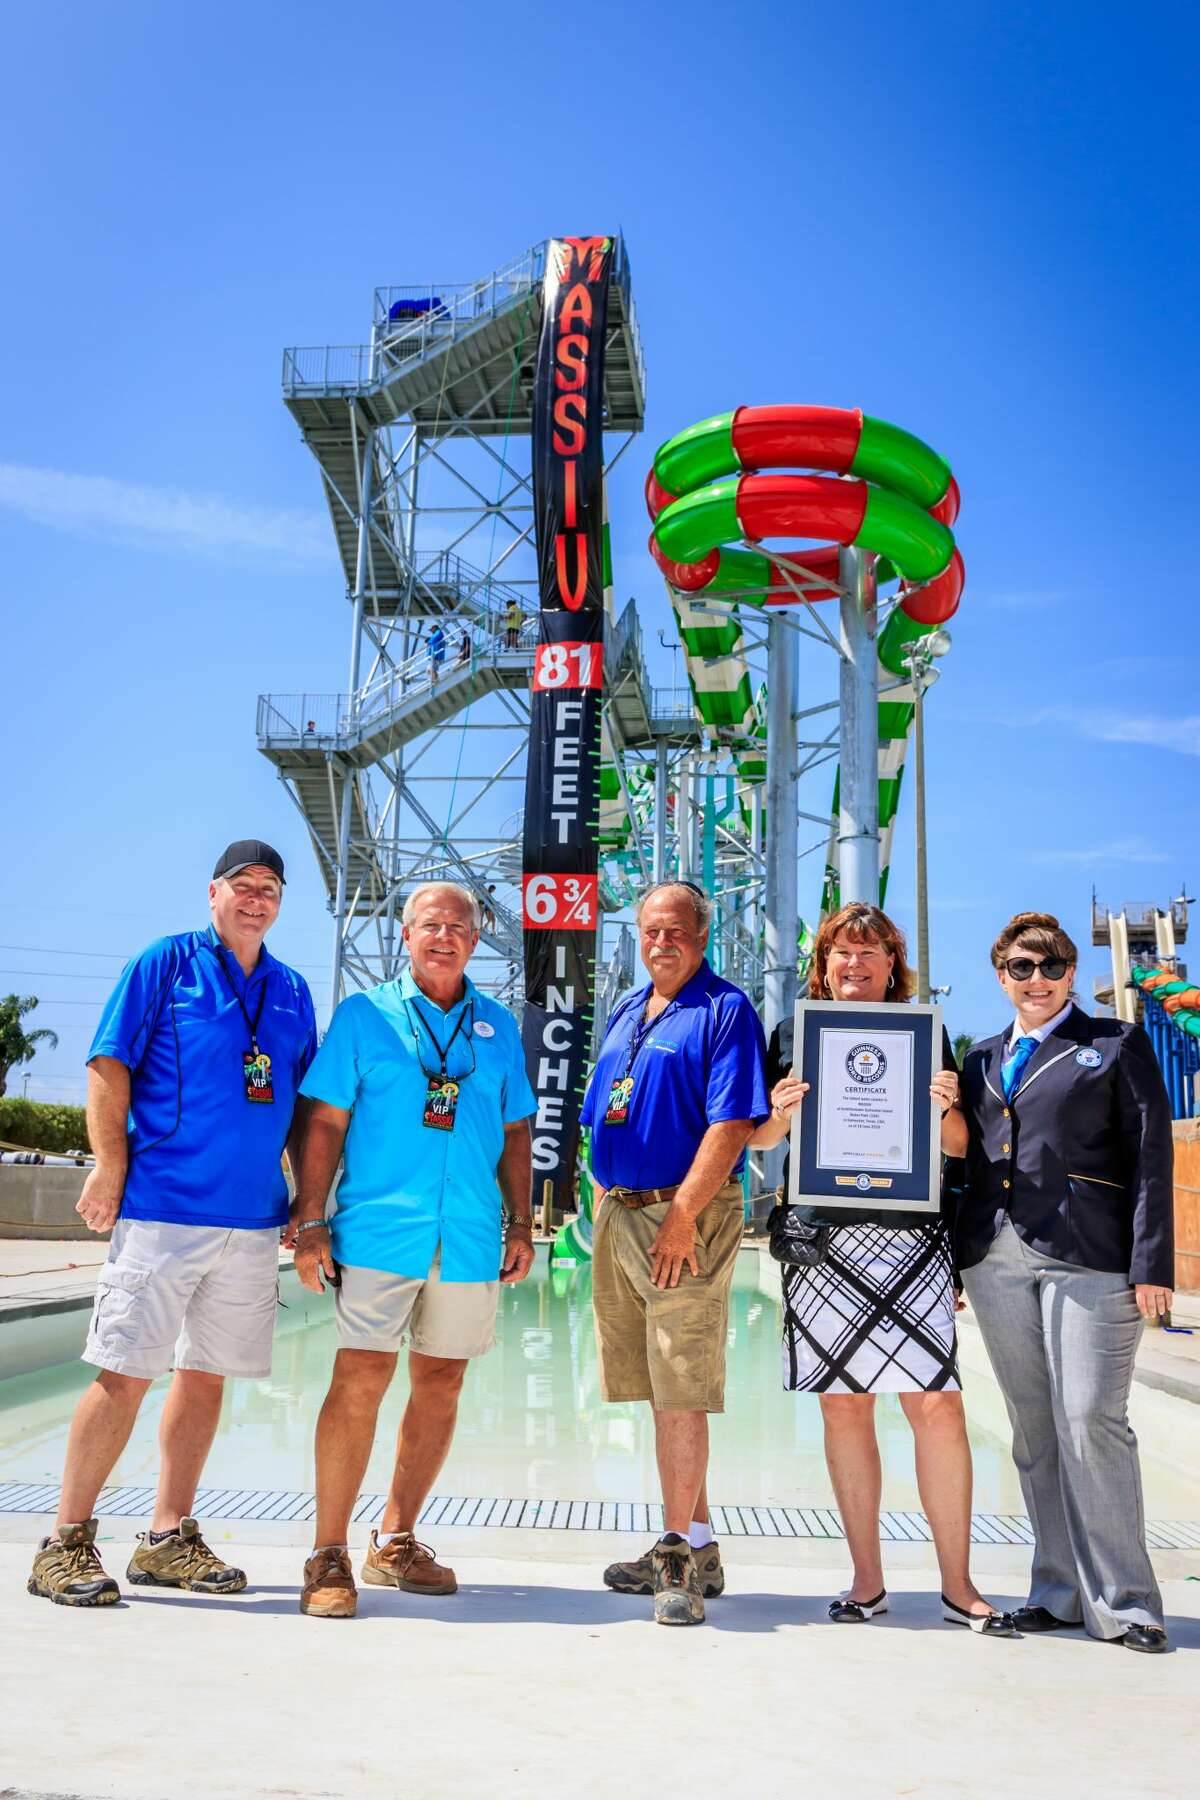 On Thursday representatives from Guinness are verified that Schlitterbahn Waterpark's MASSIV water coaster in Galveston is the world's tallest water coaster at just over 81 feet in height.